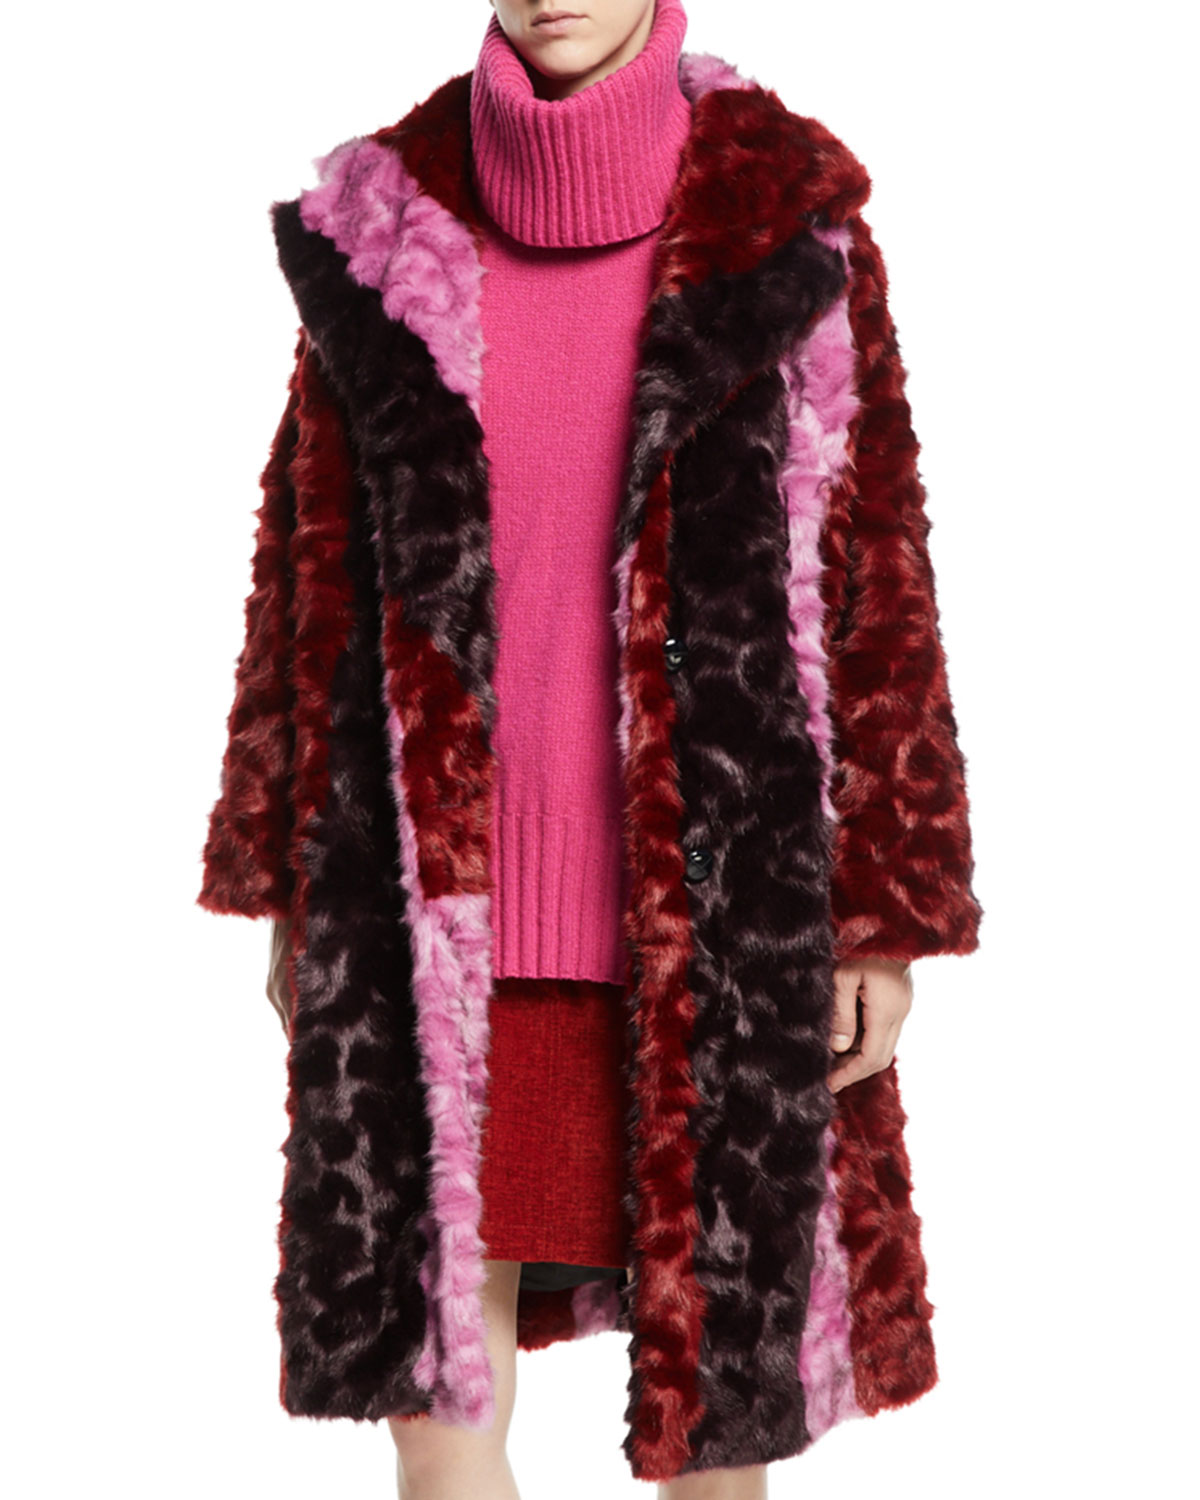 Volume Colorblock Faux-Fur Coat